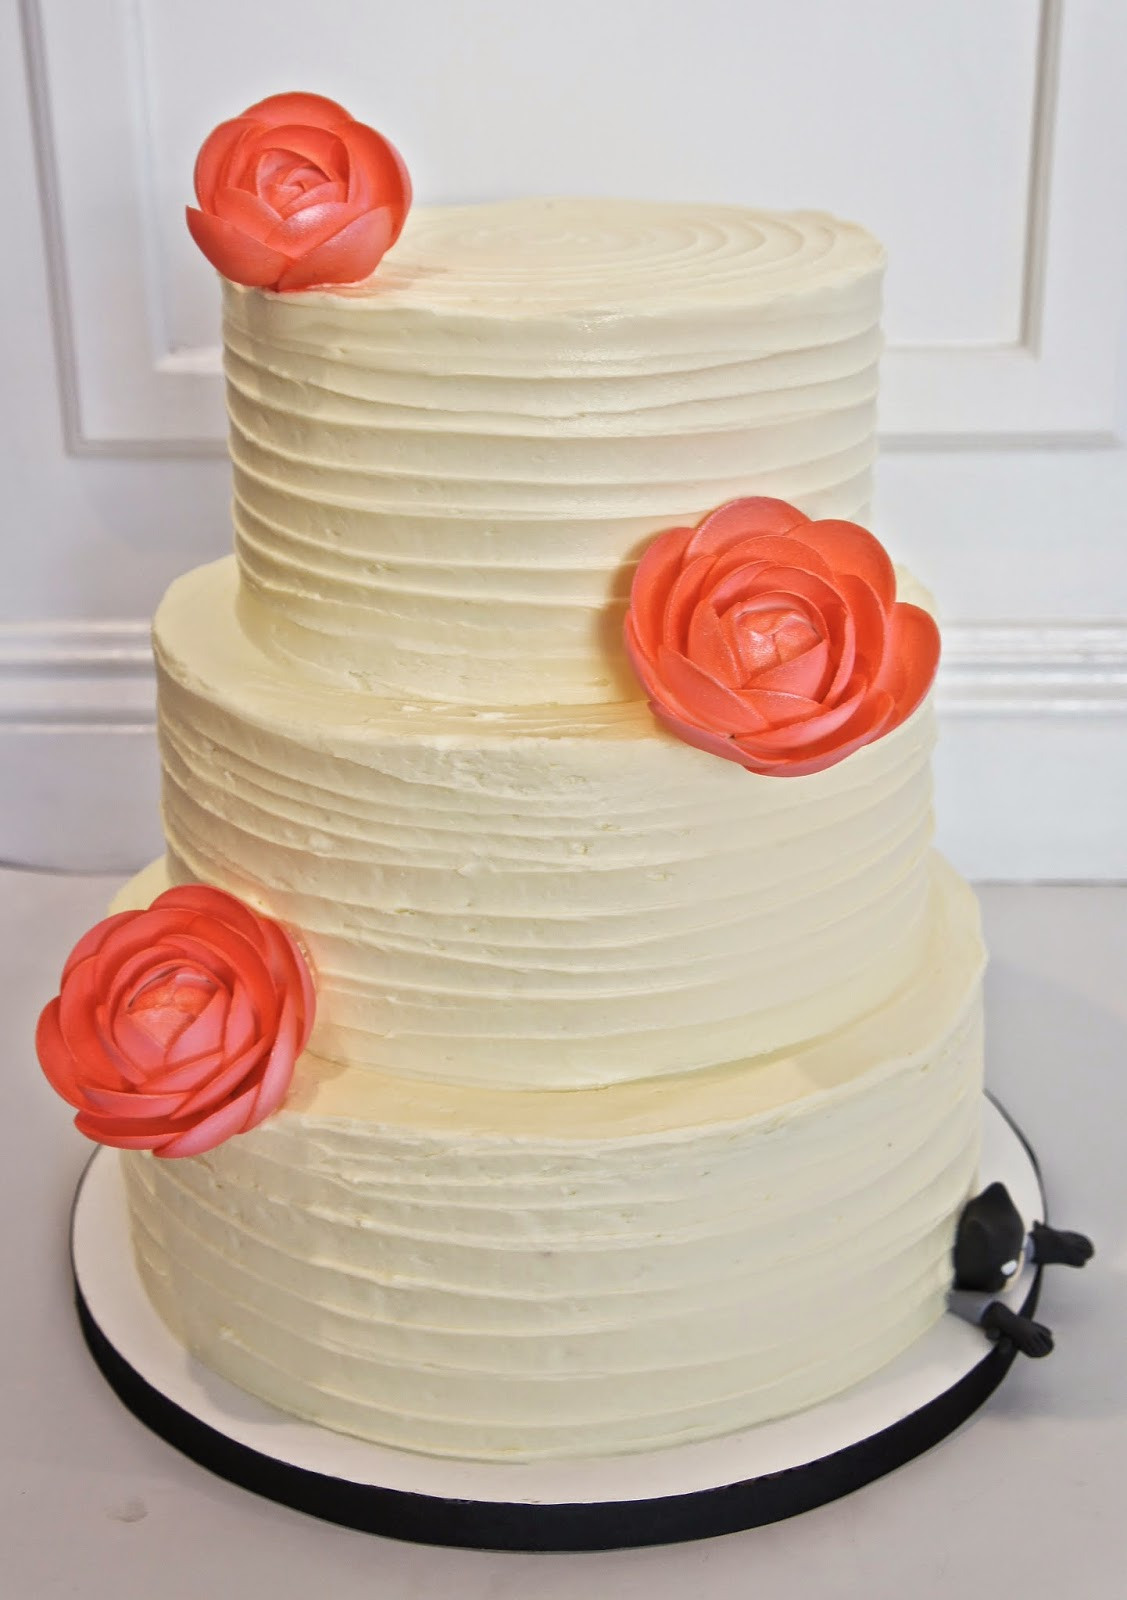 Wedding Cakes & Custom Cakes - Burbank CA